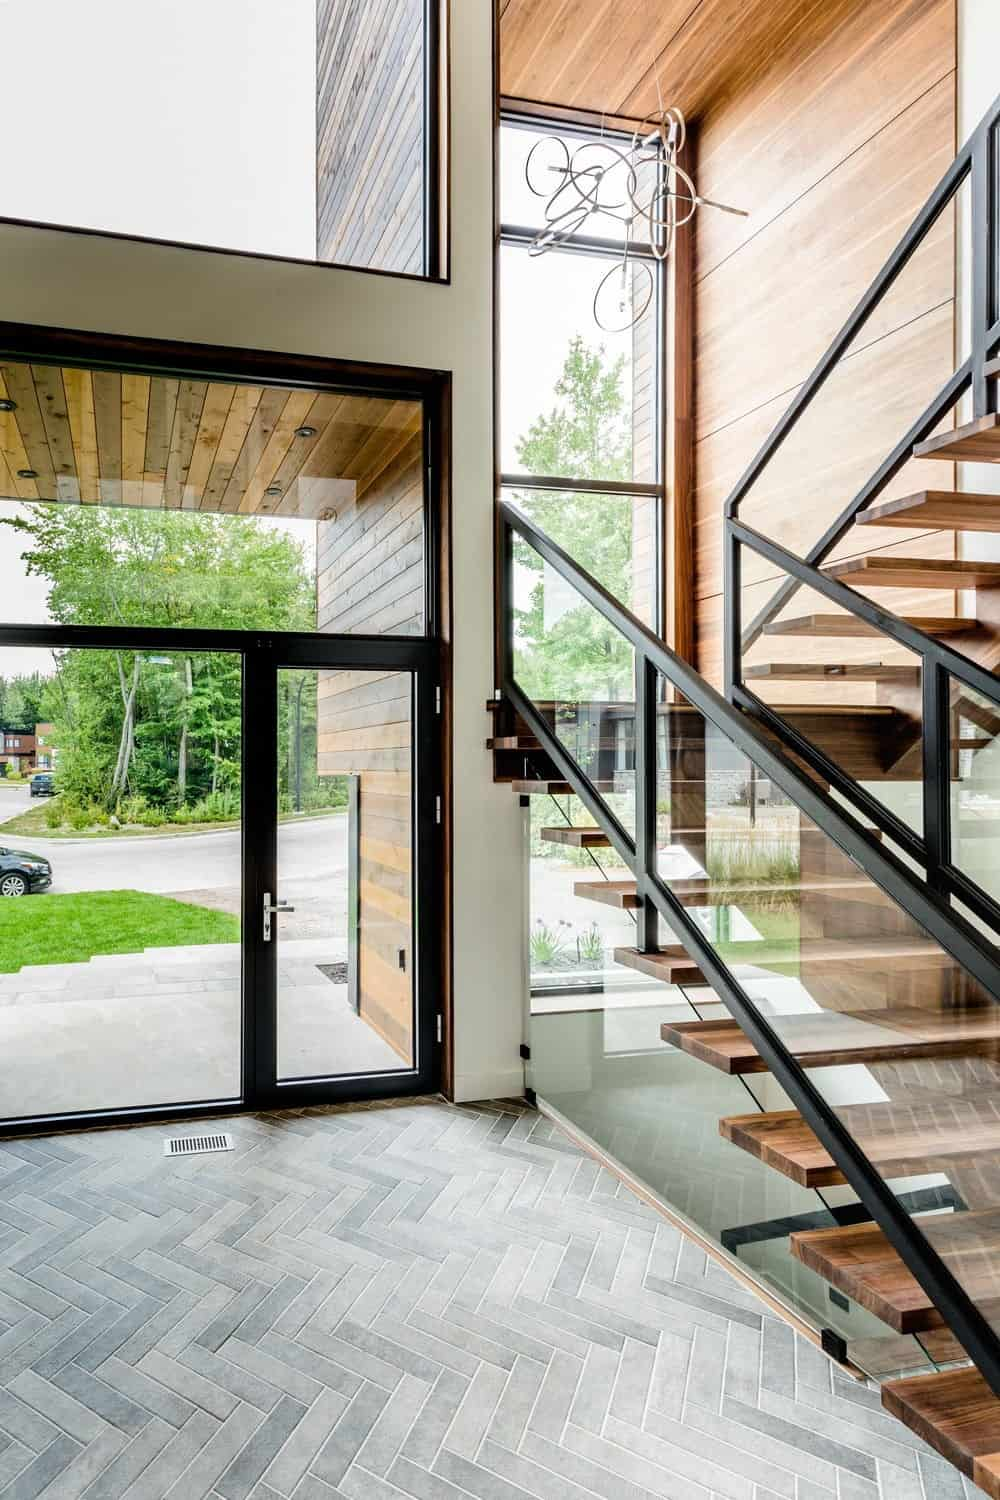 The entry features a modish staircase and stylish doorway. Photo credit: Dominic Boudreau